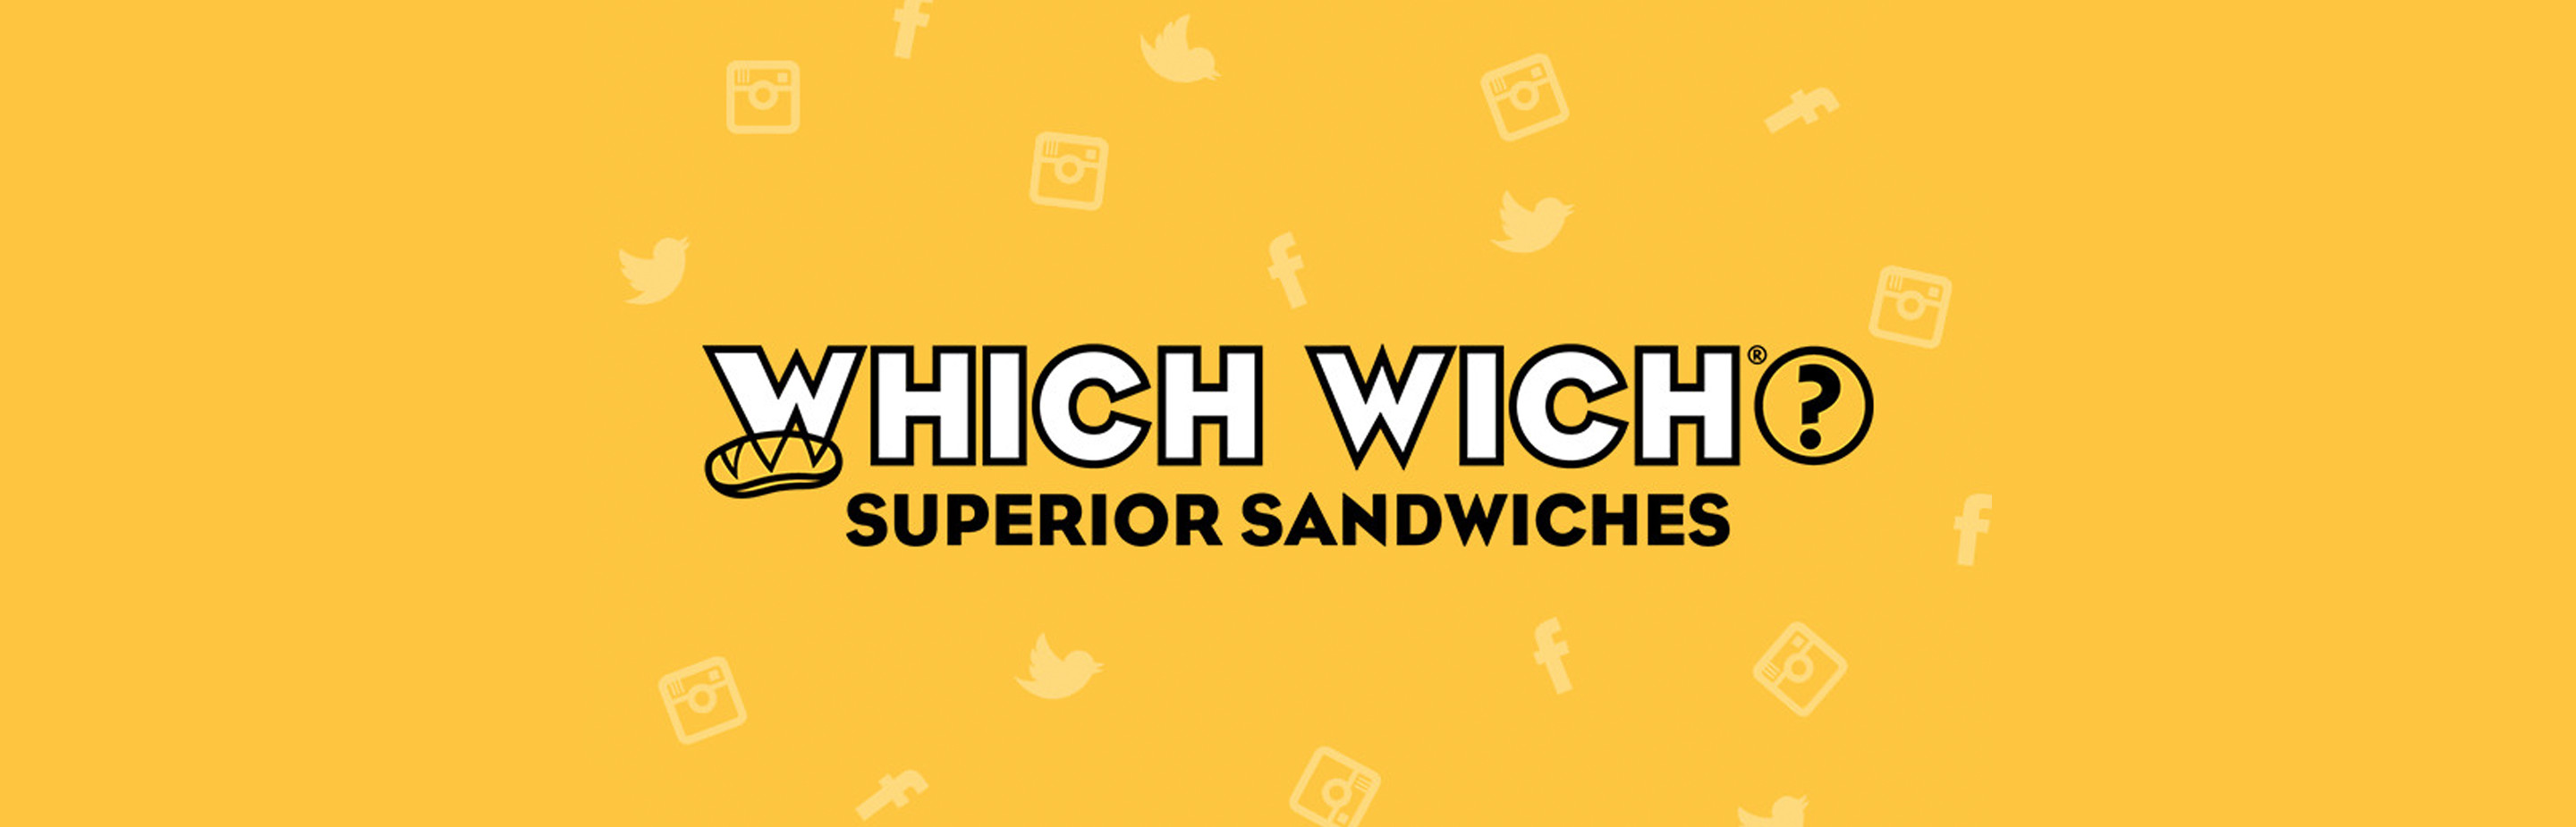 lrxd takes over as lead agency for which wich superior sandwiches lrxd